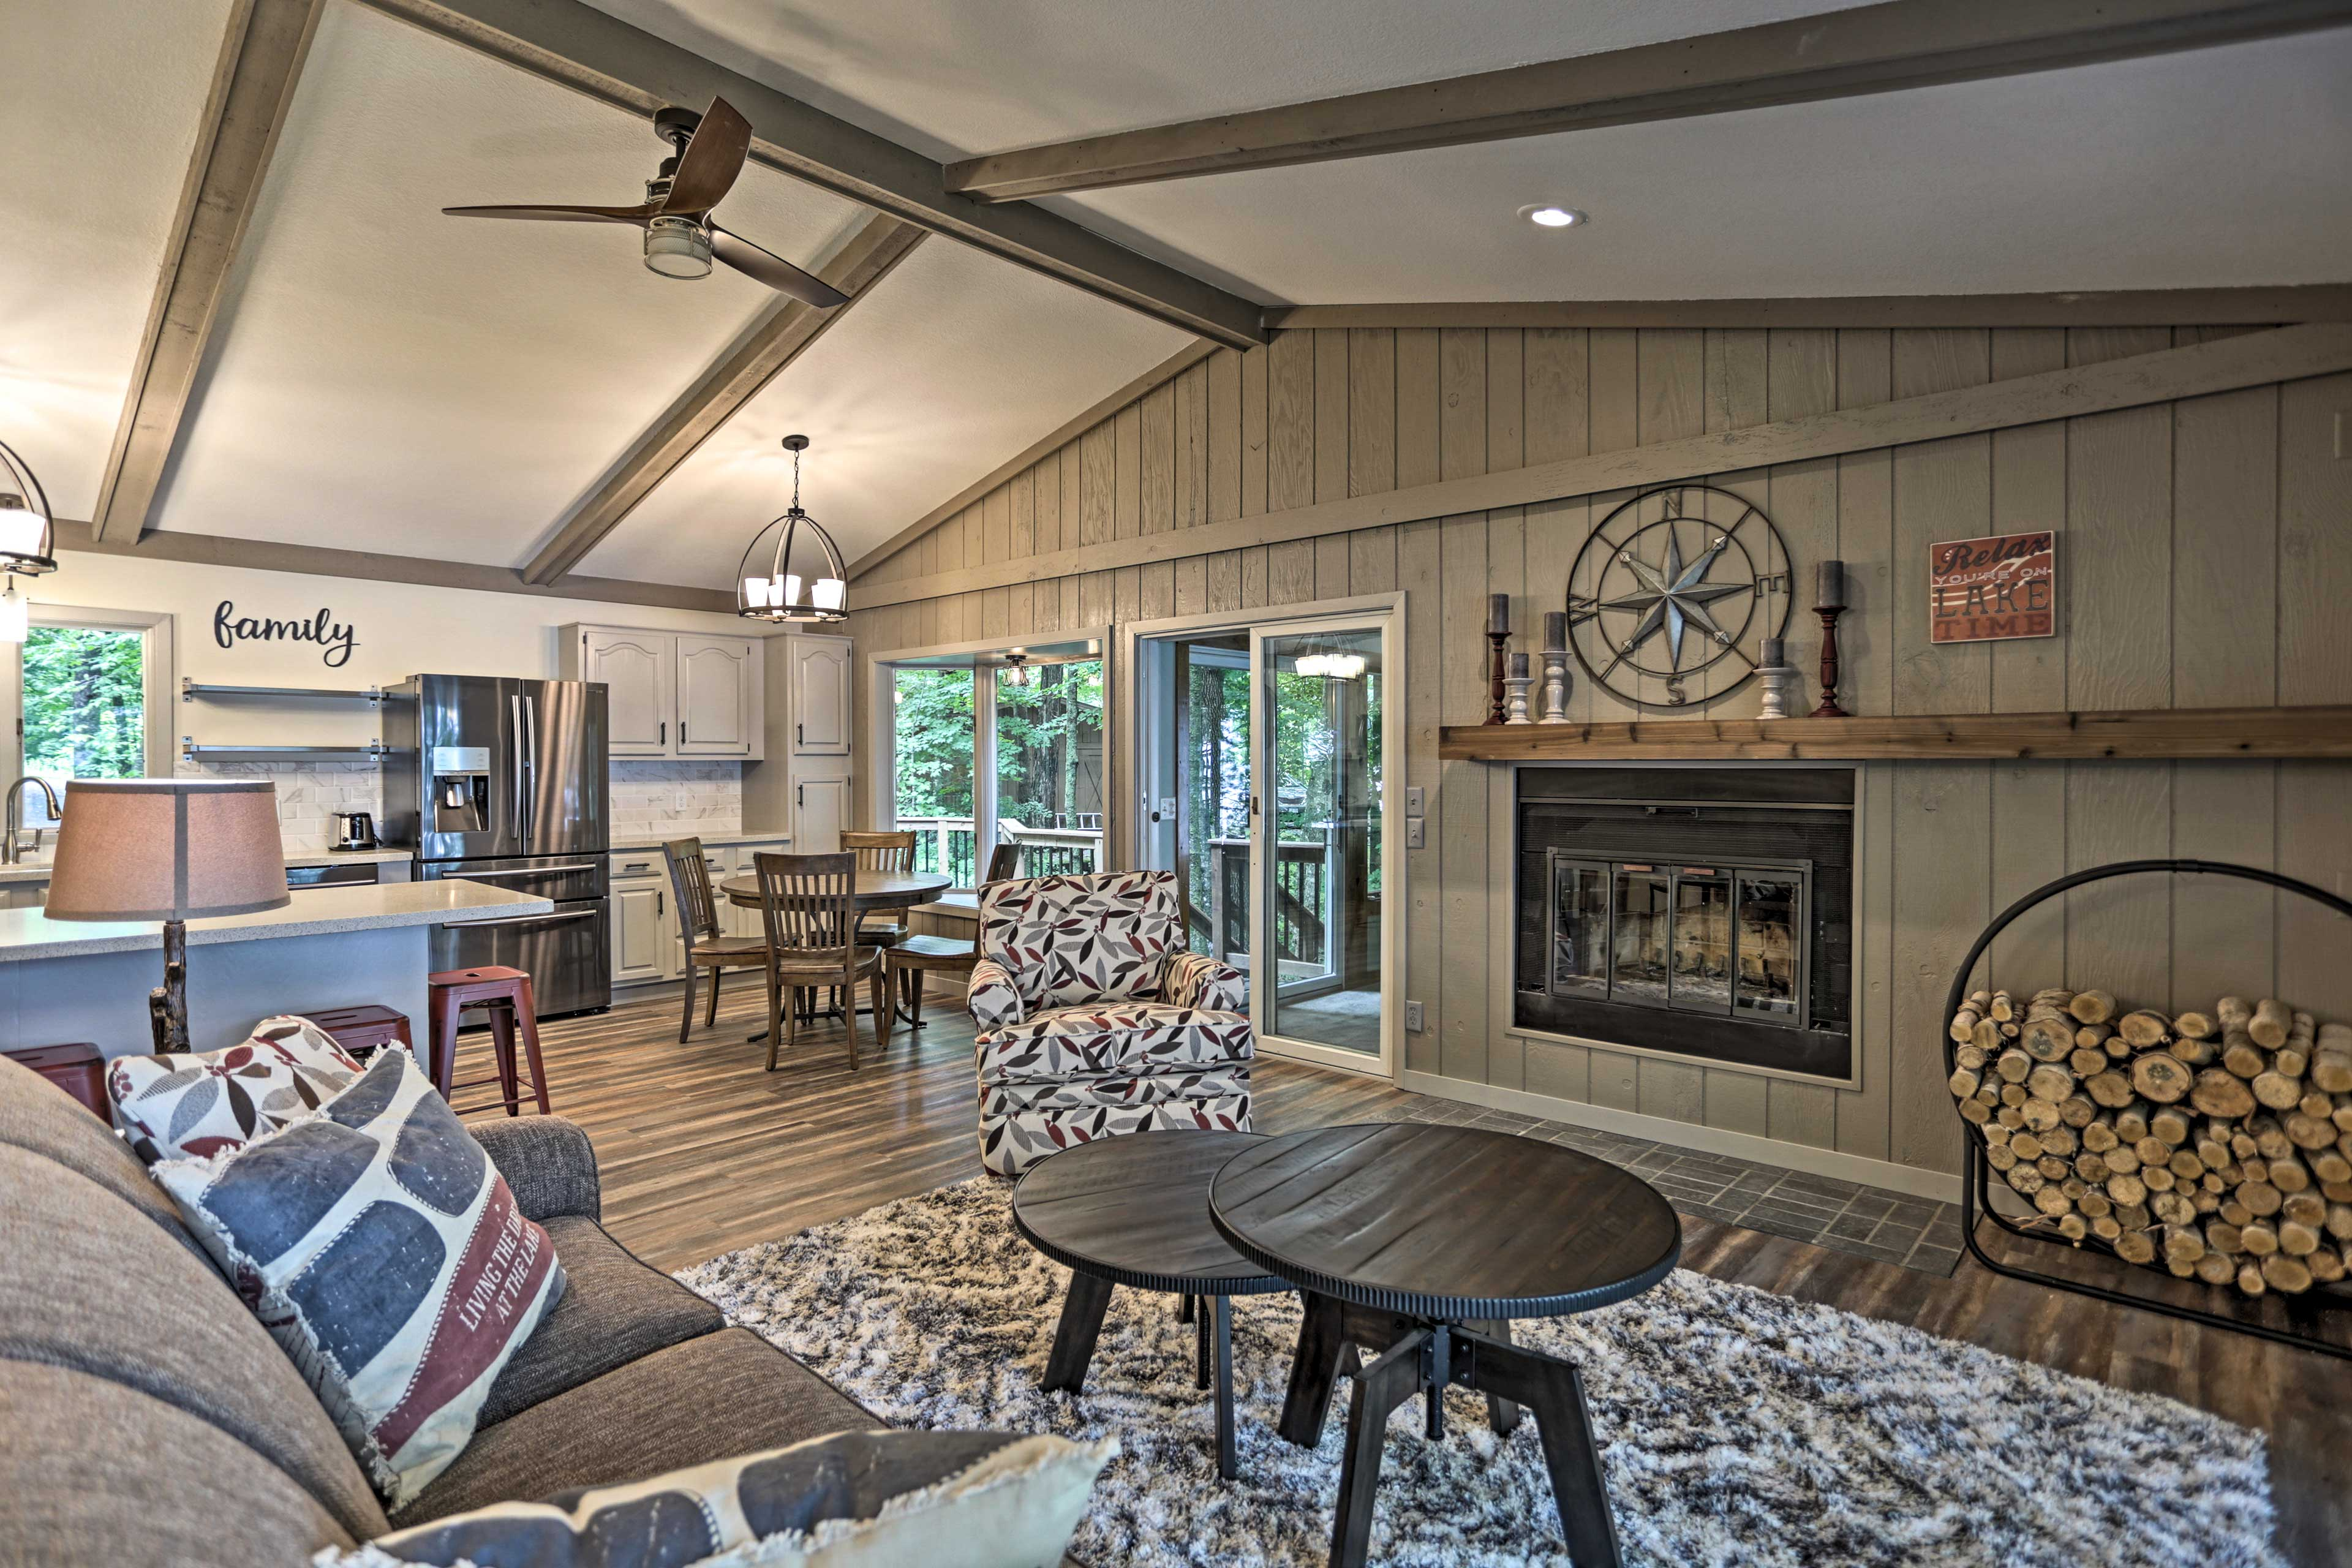 The 2,572-square-foot interior blends modern comfort with rustic charm.